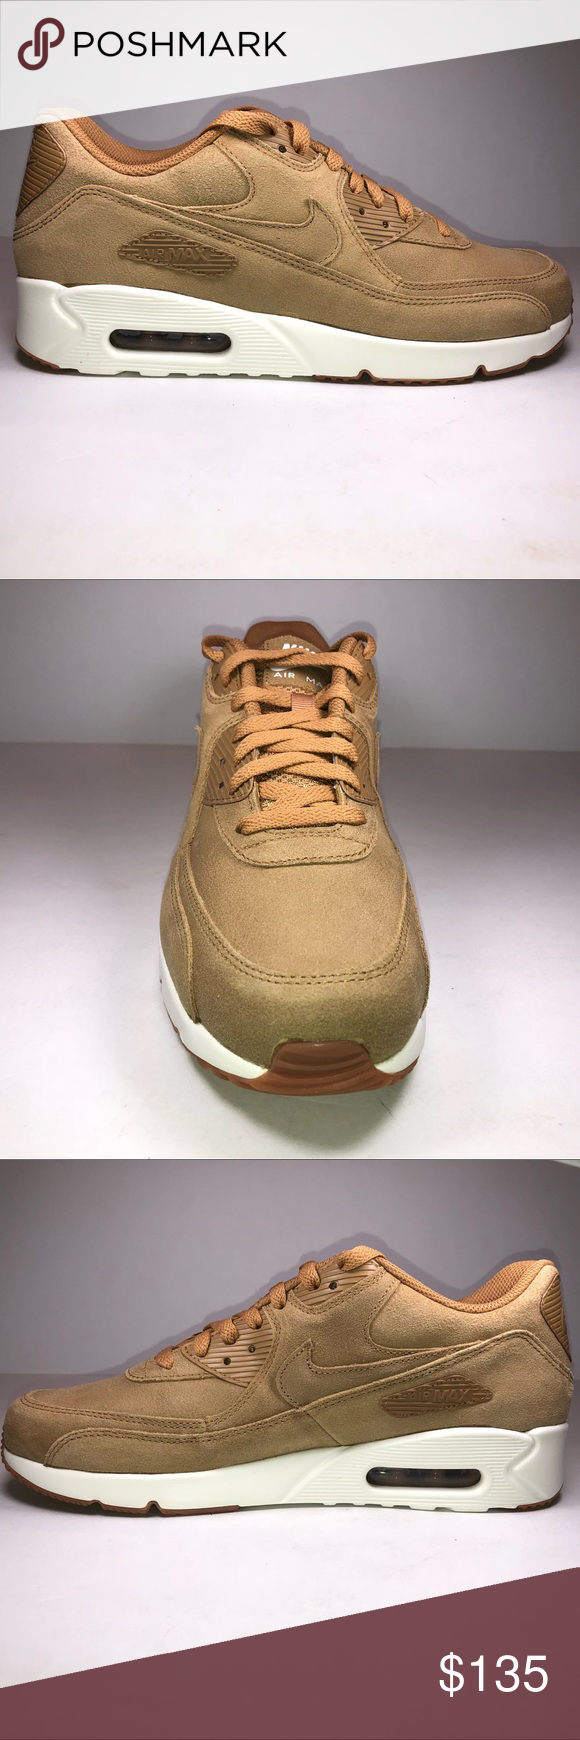 Nike Air Max 90 Ultra 2.0 LTE Flax Sail Gum Shoes New With